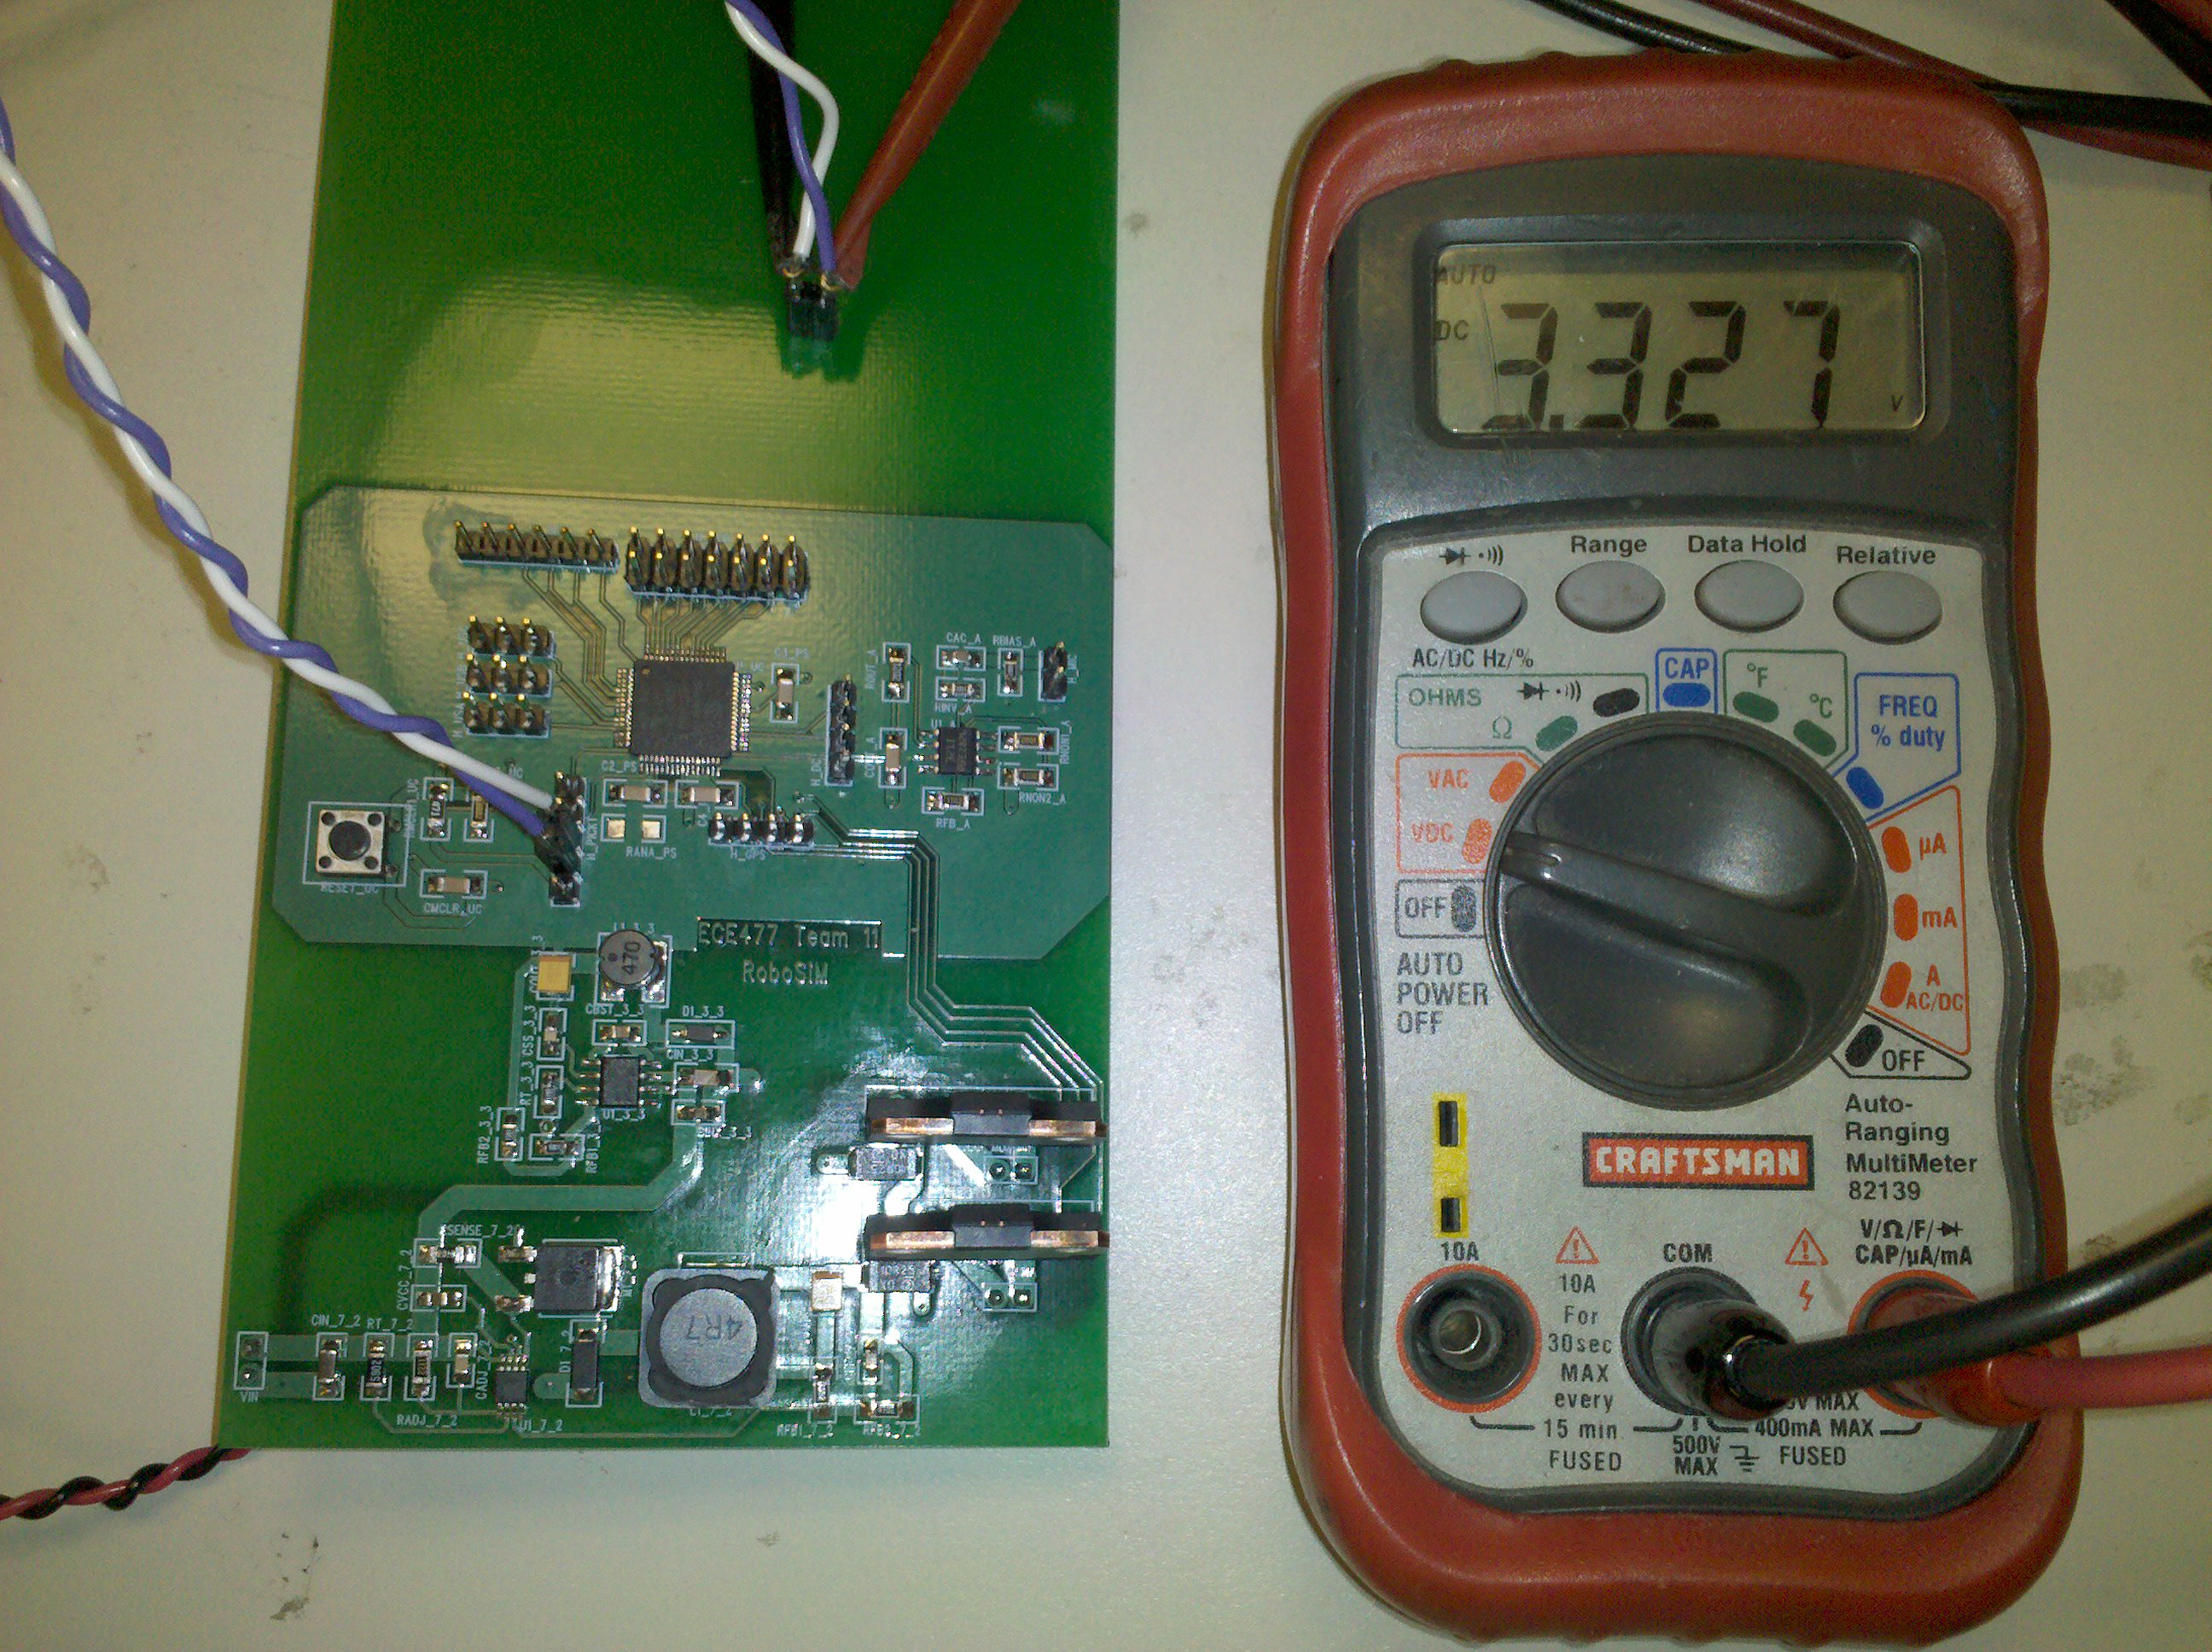 Ryan Taylors Lab Notebook More Display Circuits Hobby Category List Email David A Mirco On Board